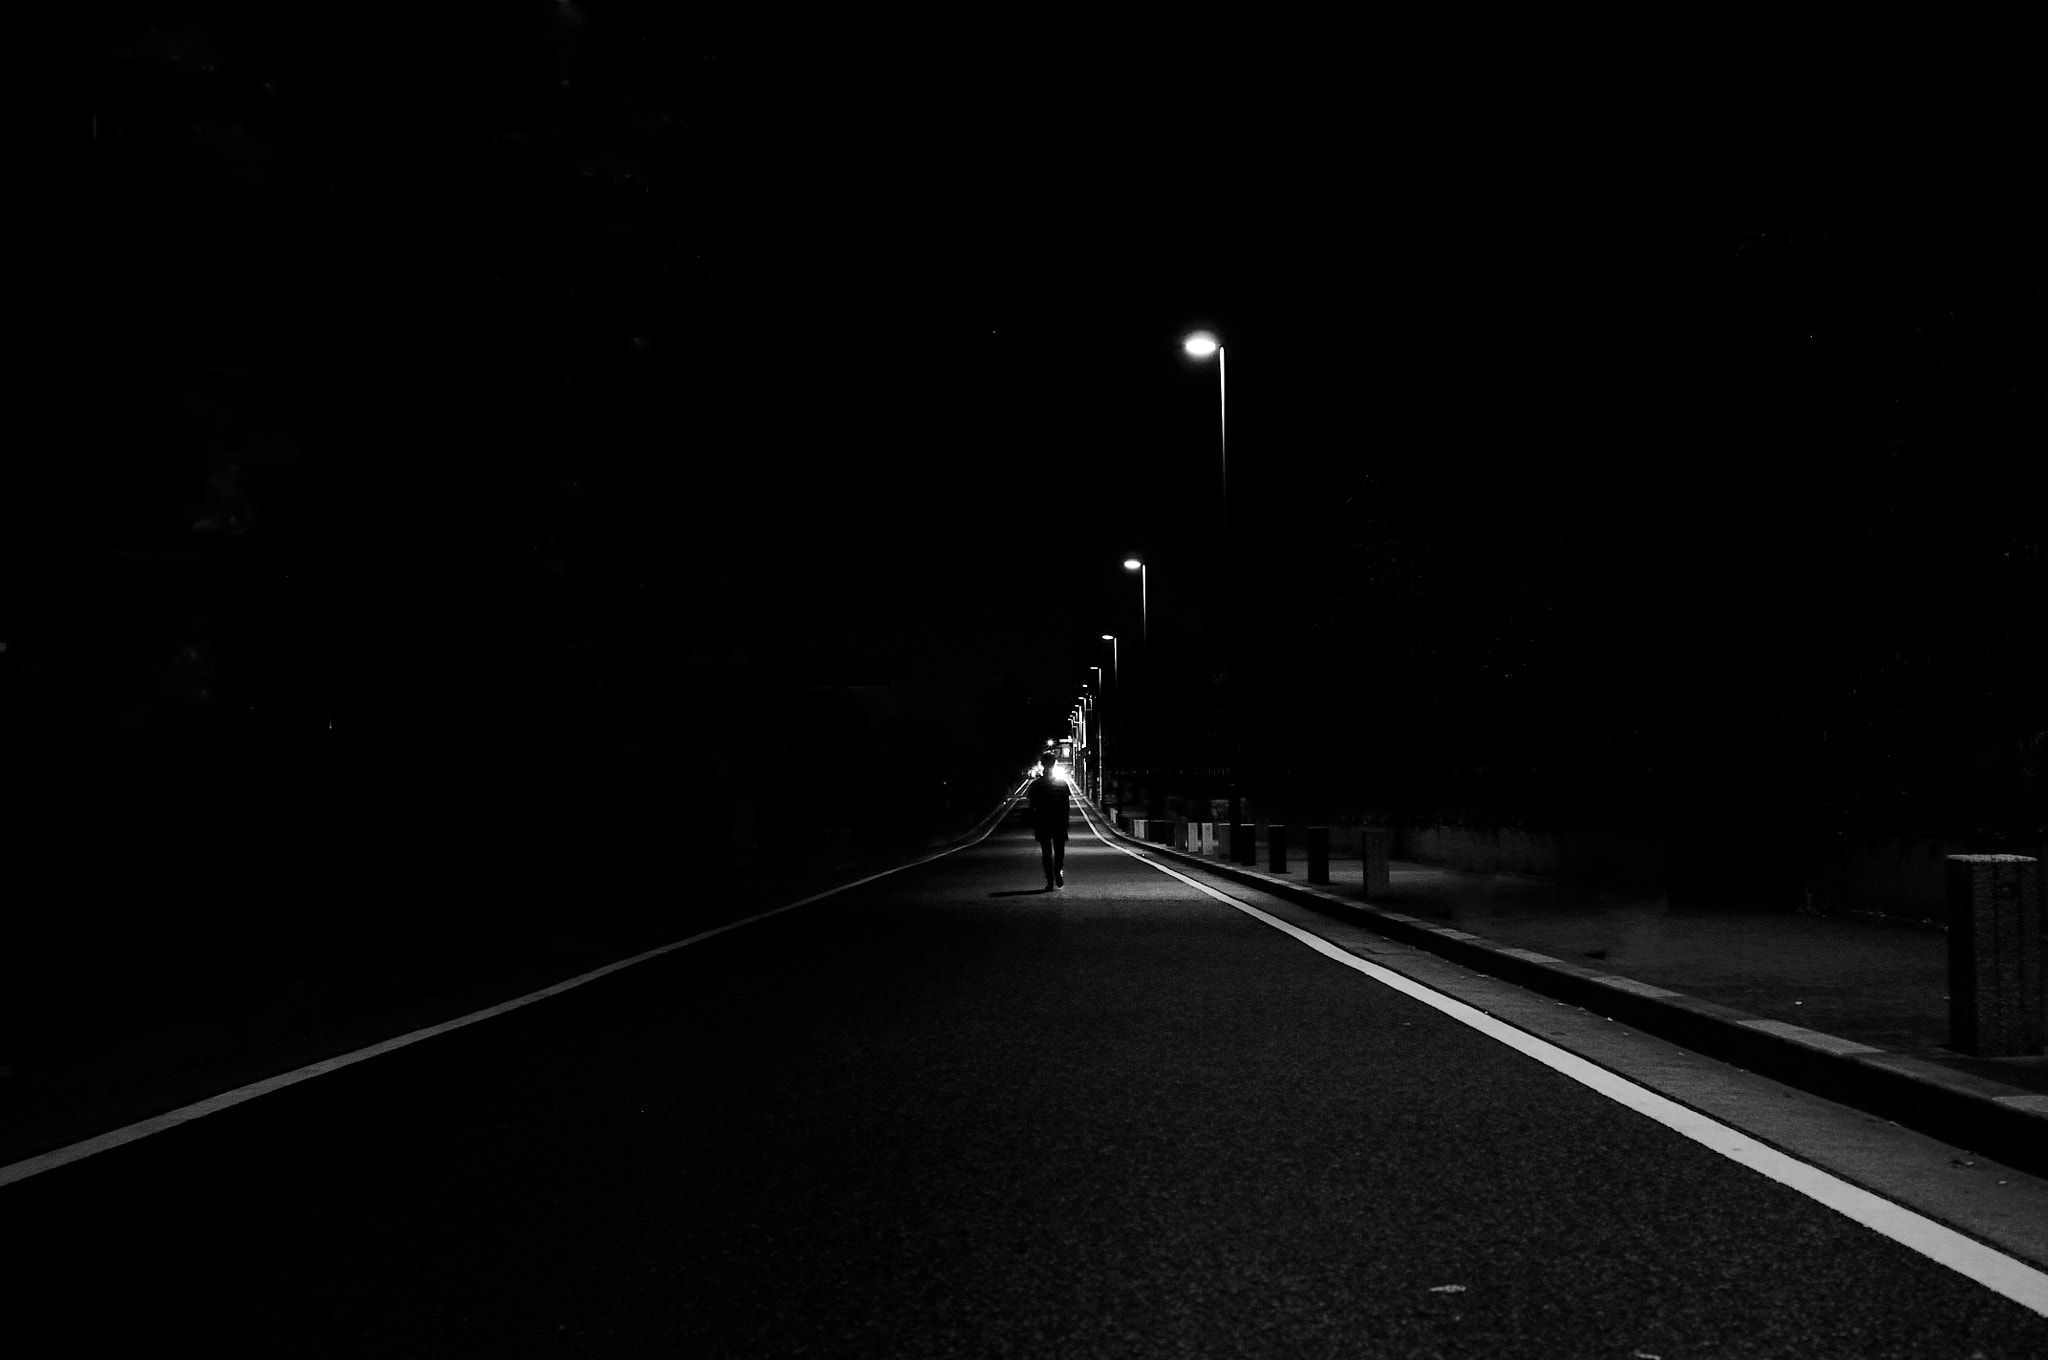 Photograph night road by nao sakaki on 500px